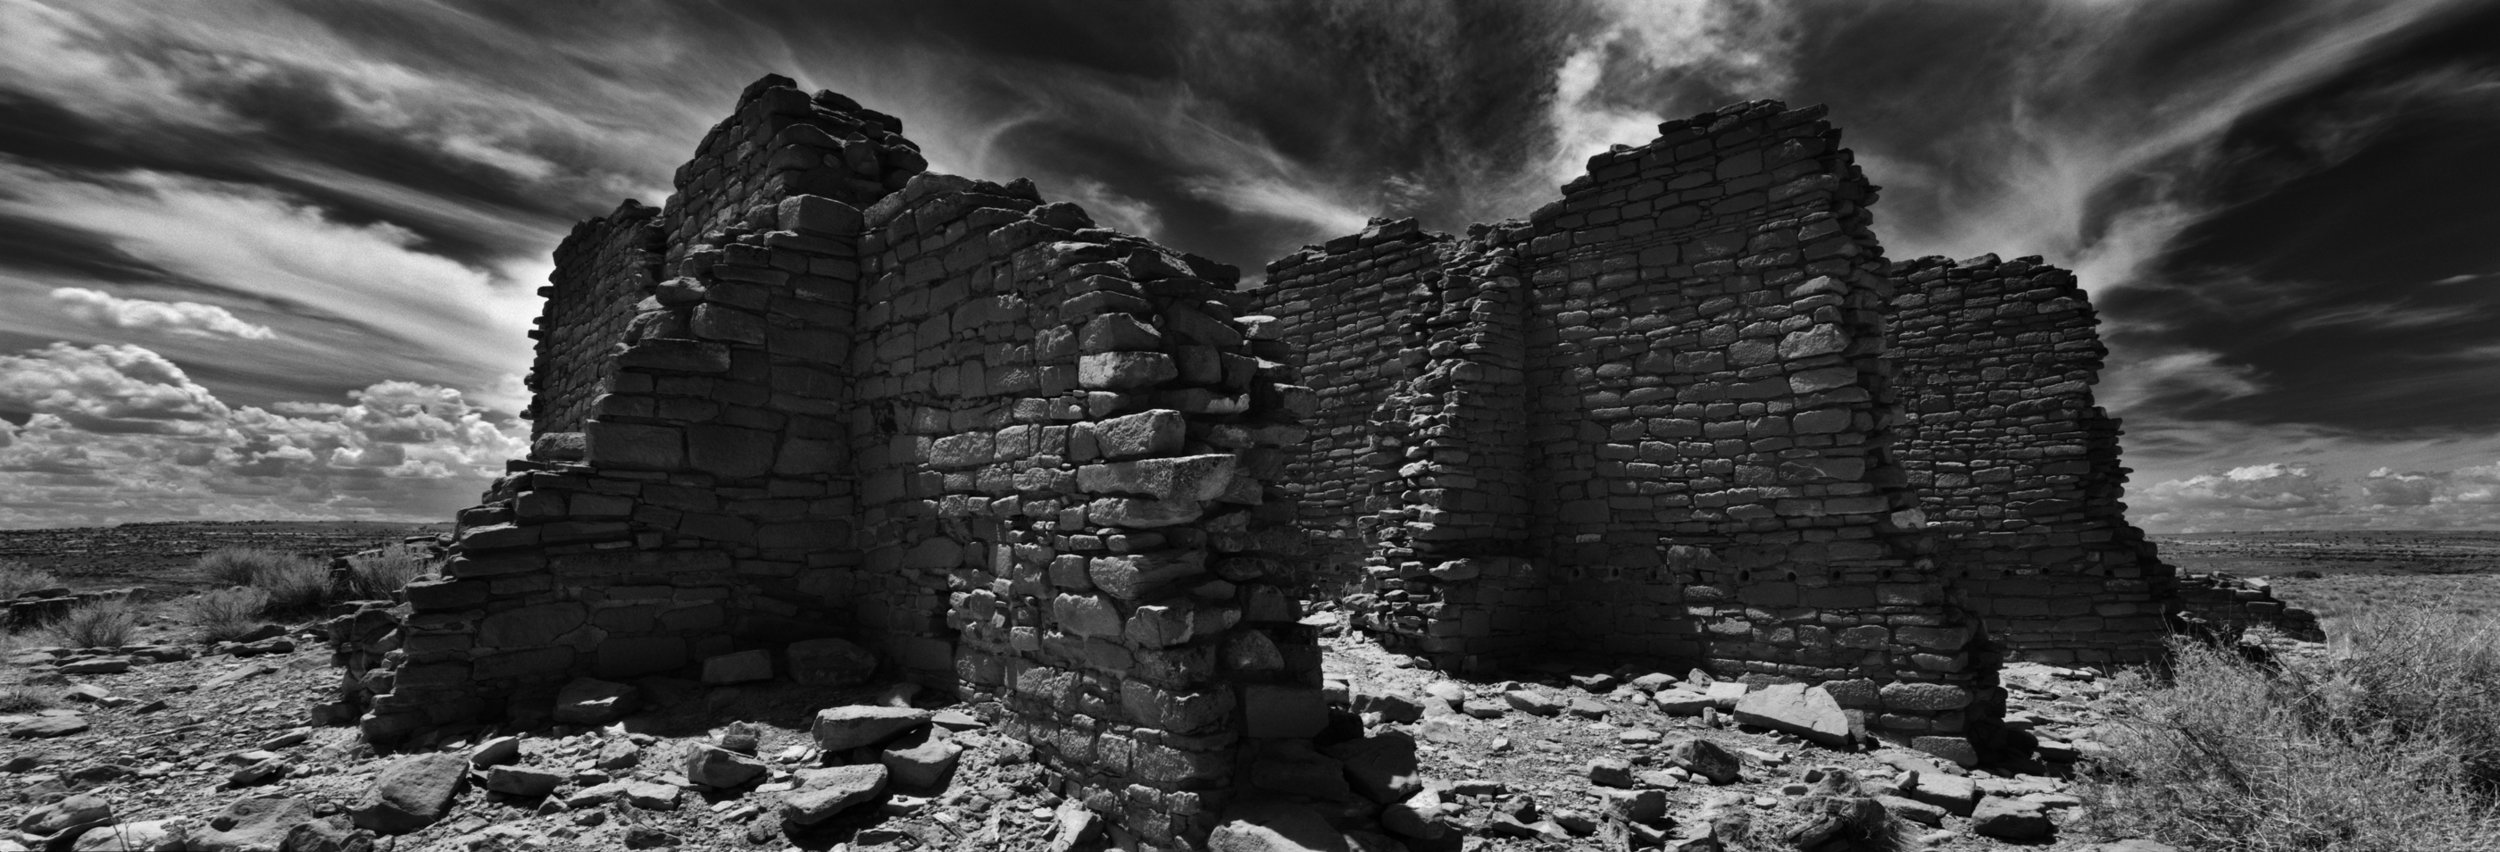 Pueblo Alto- Chaco Culture National Historical Park, New Mexico